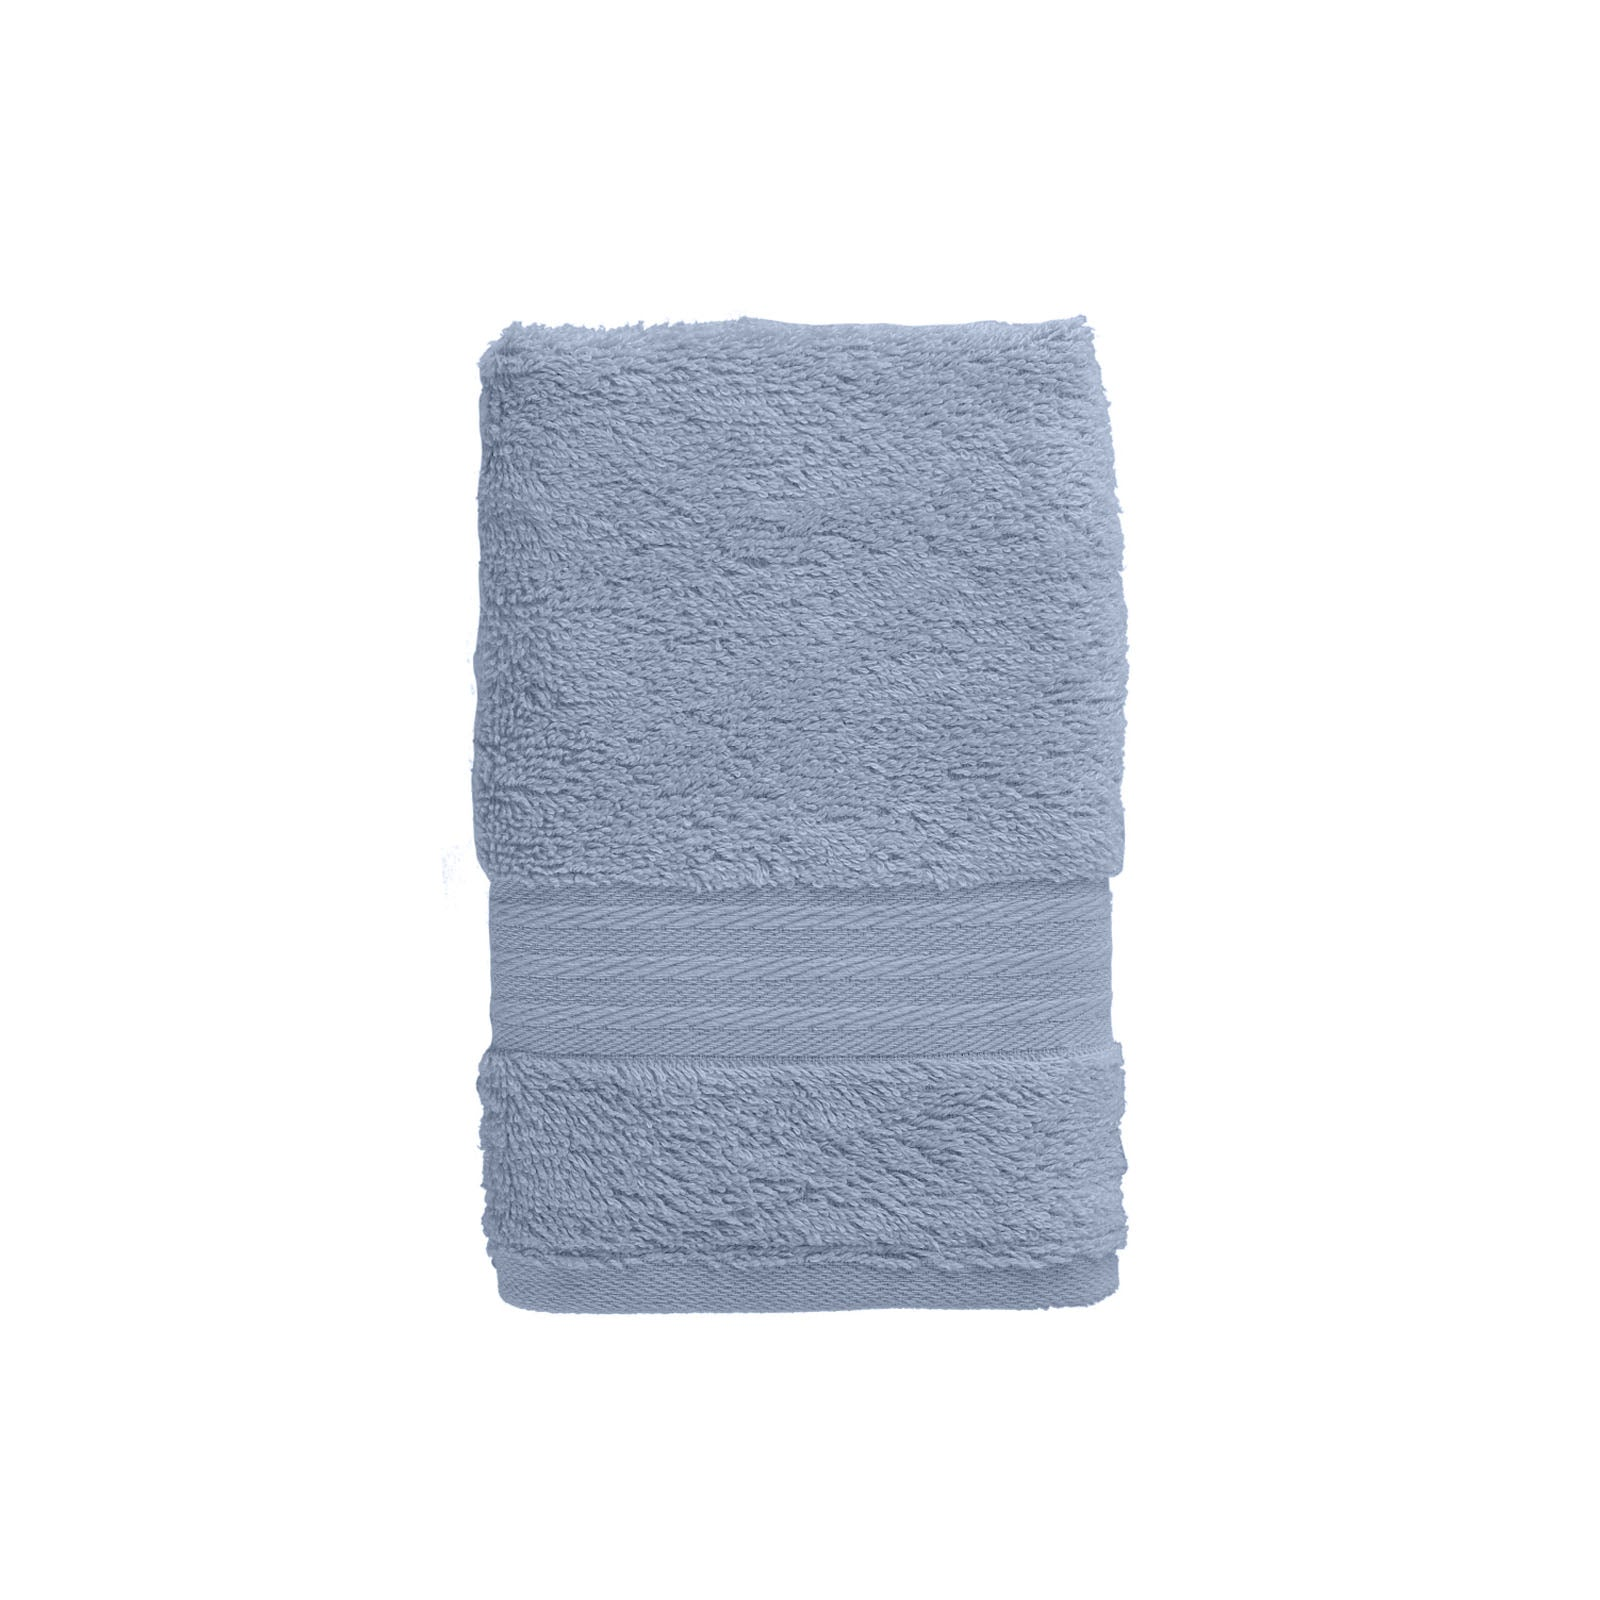 30X50 PURE SOFT  towel  200.13.01.0142 - ebarza